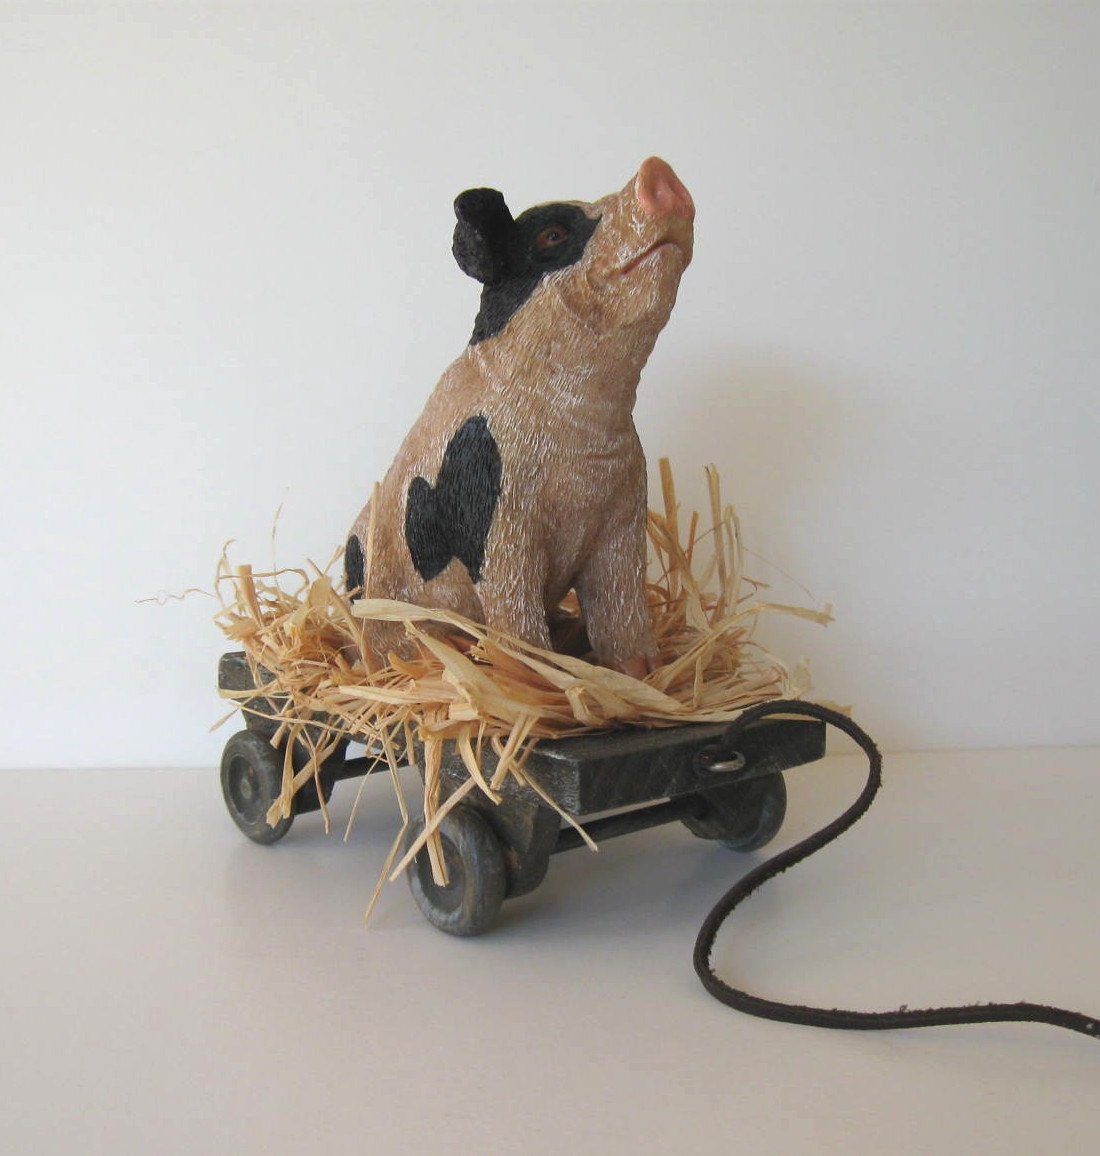 Wooden Pig Pull Toy Vintage Toy Primitive Folk Art Country